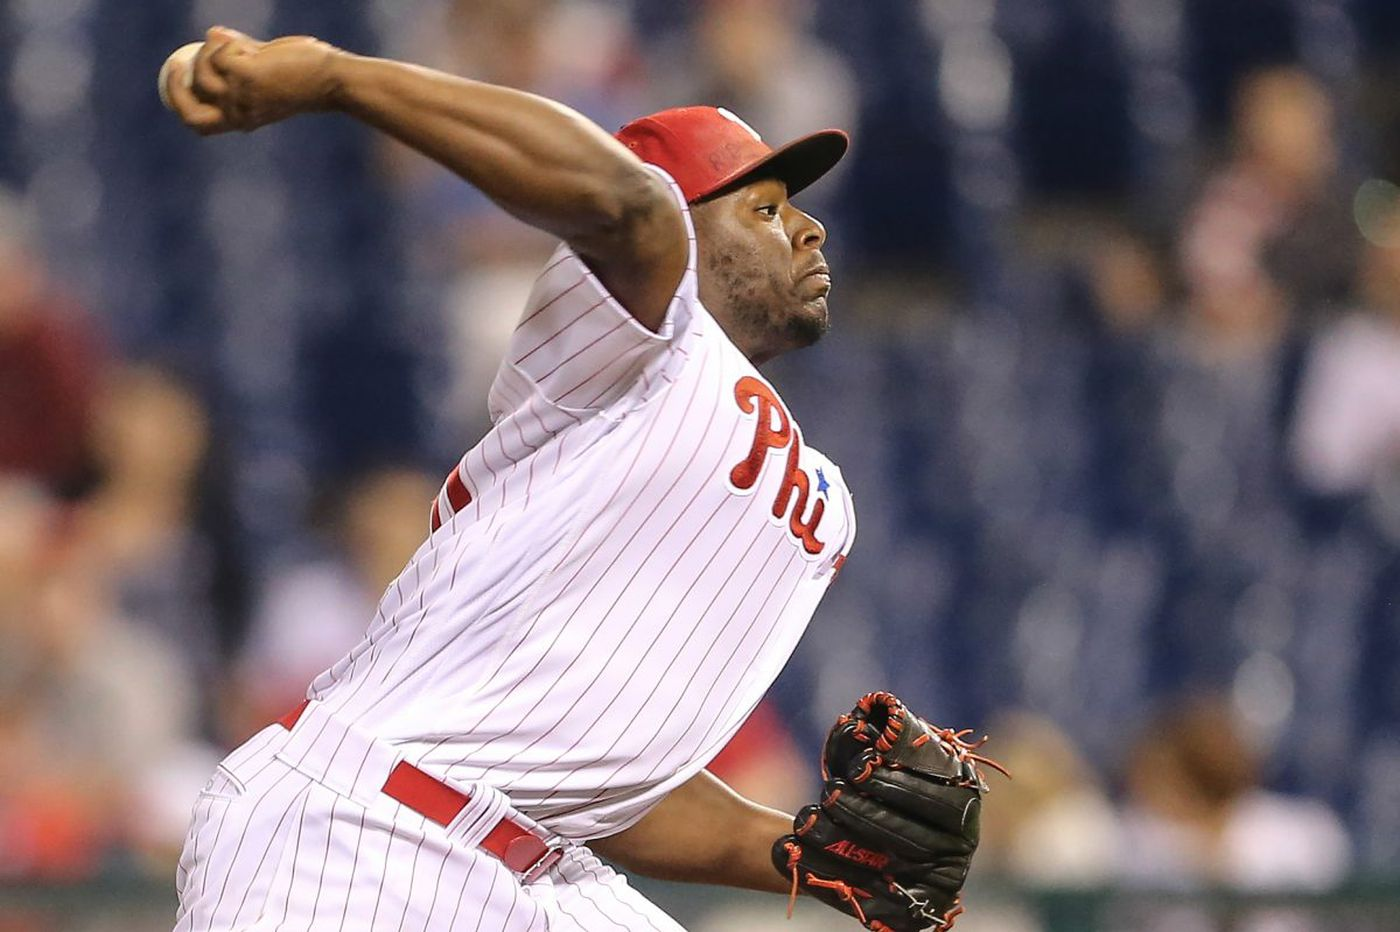 Hector Neris deserves Phillies closer role after strong second half